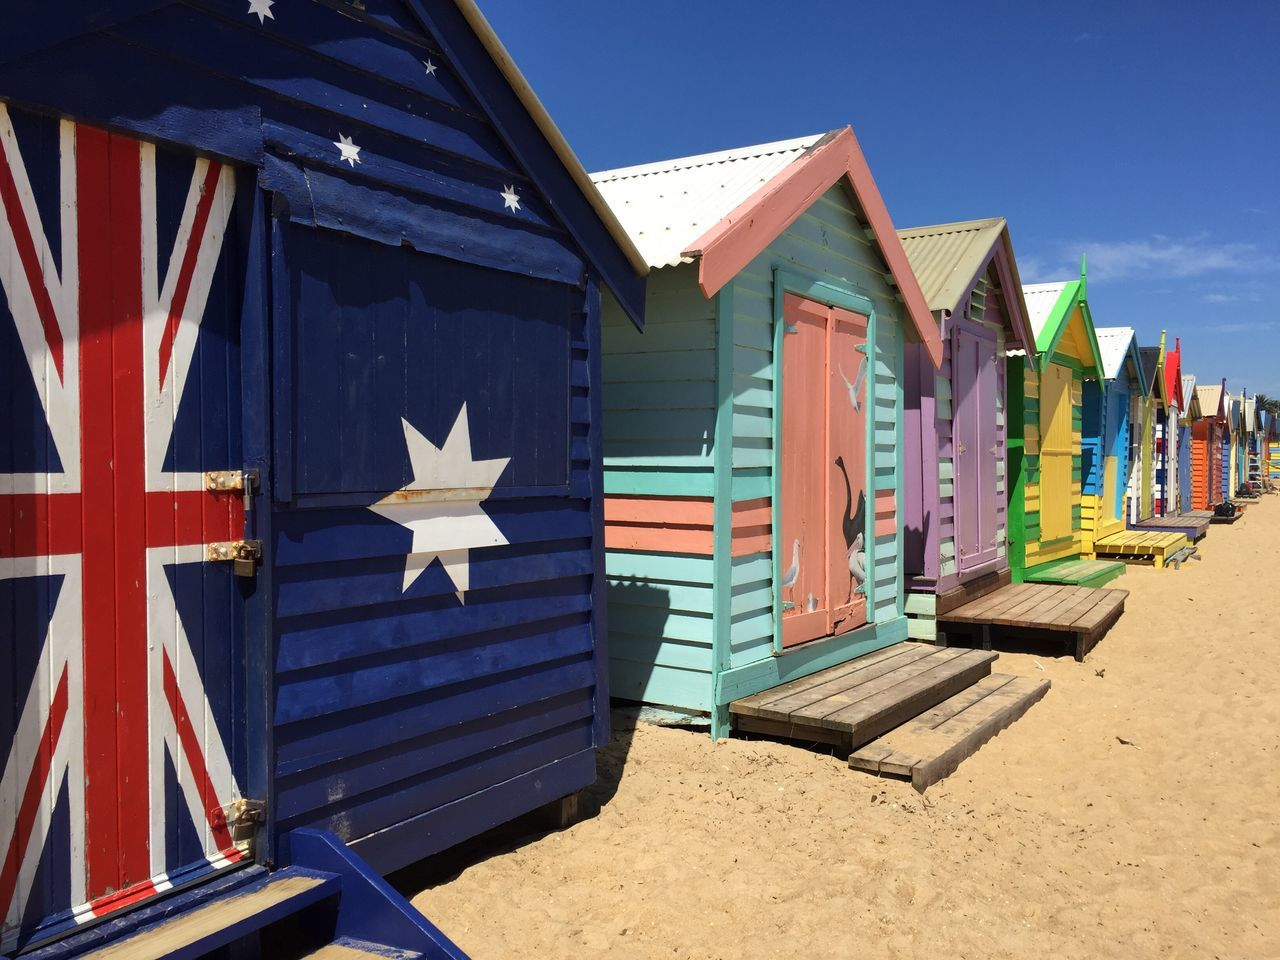 A day on the beach in Australia Architecture Building Exterior Flag Sunlight No People Sand Beach Day Outdoors Patriotism Sky Beach Hut